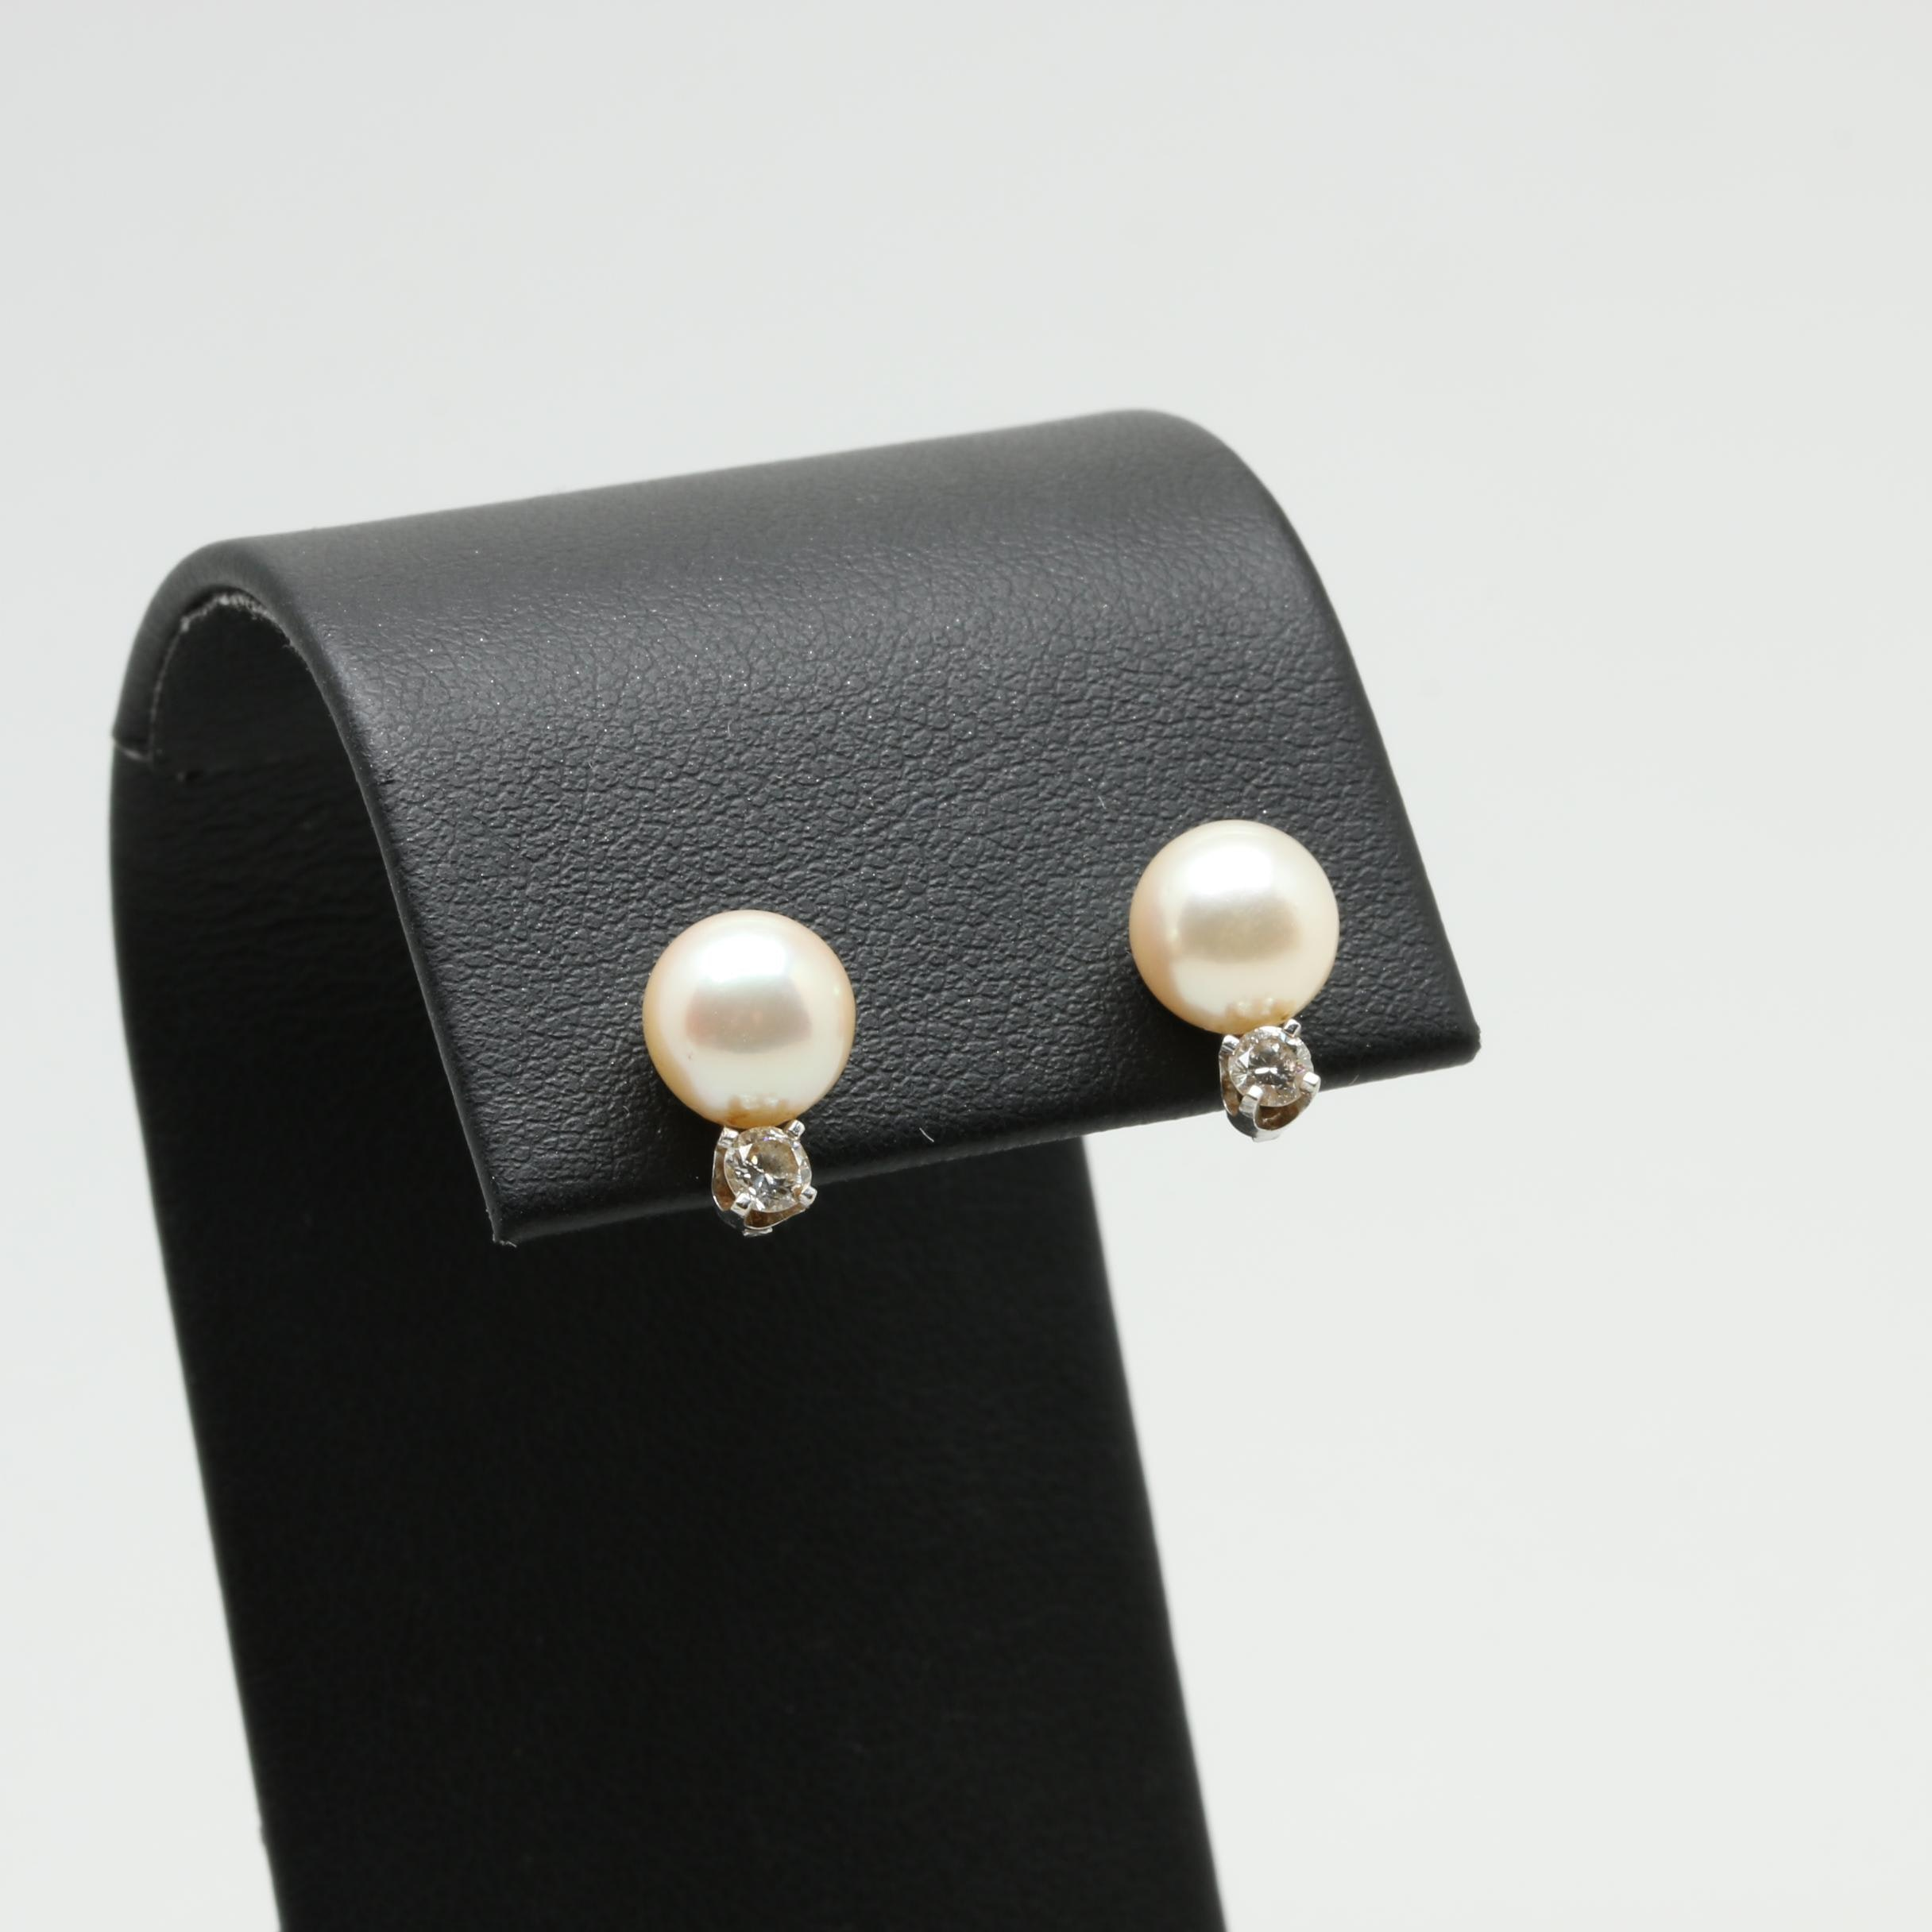 14K White Gold Cultured Pearl and Diamond Stud Earrings